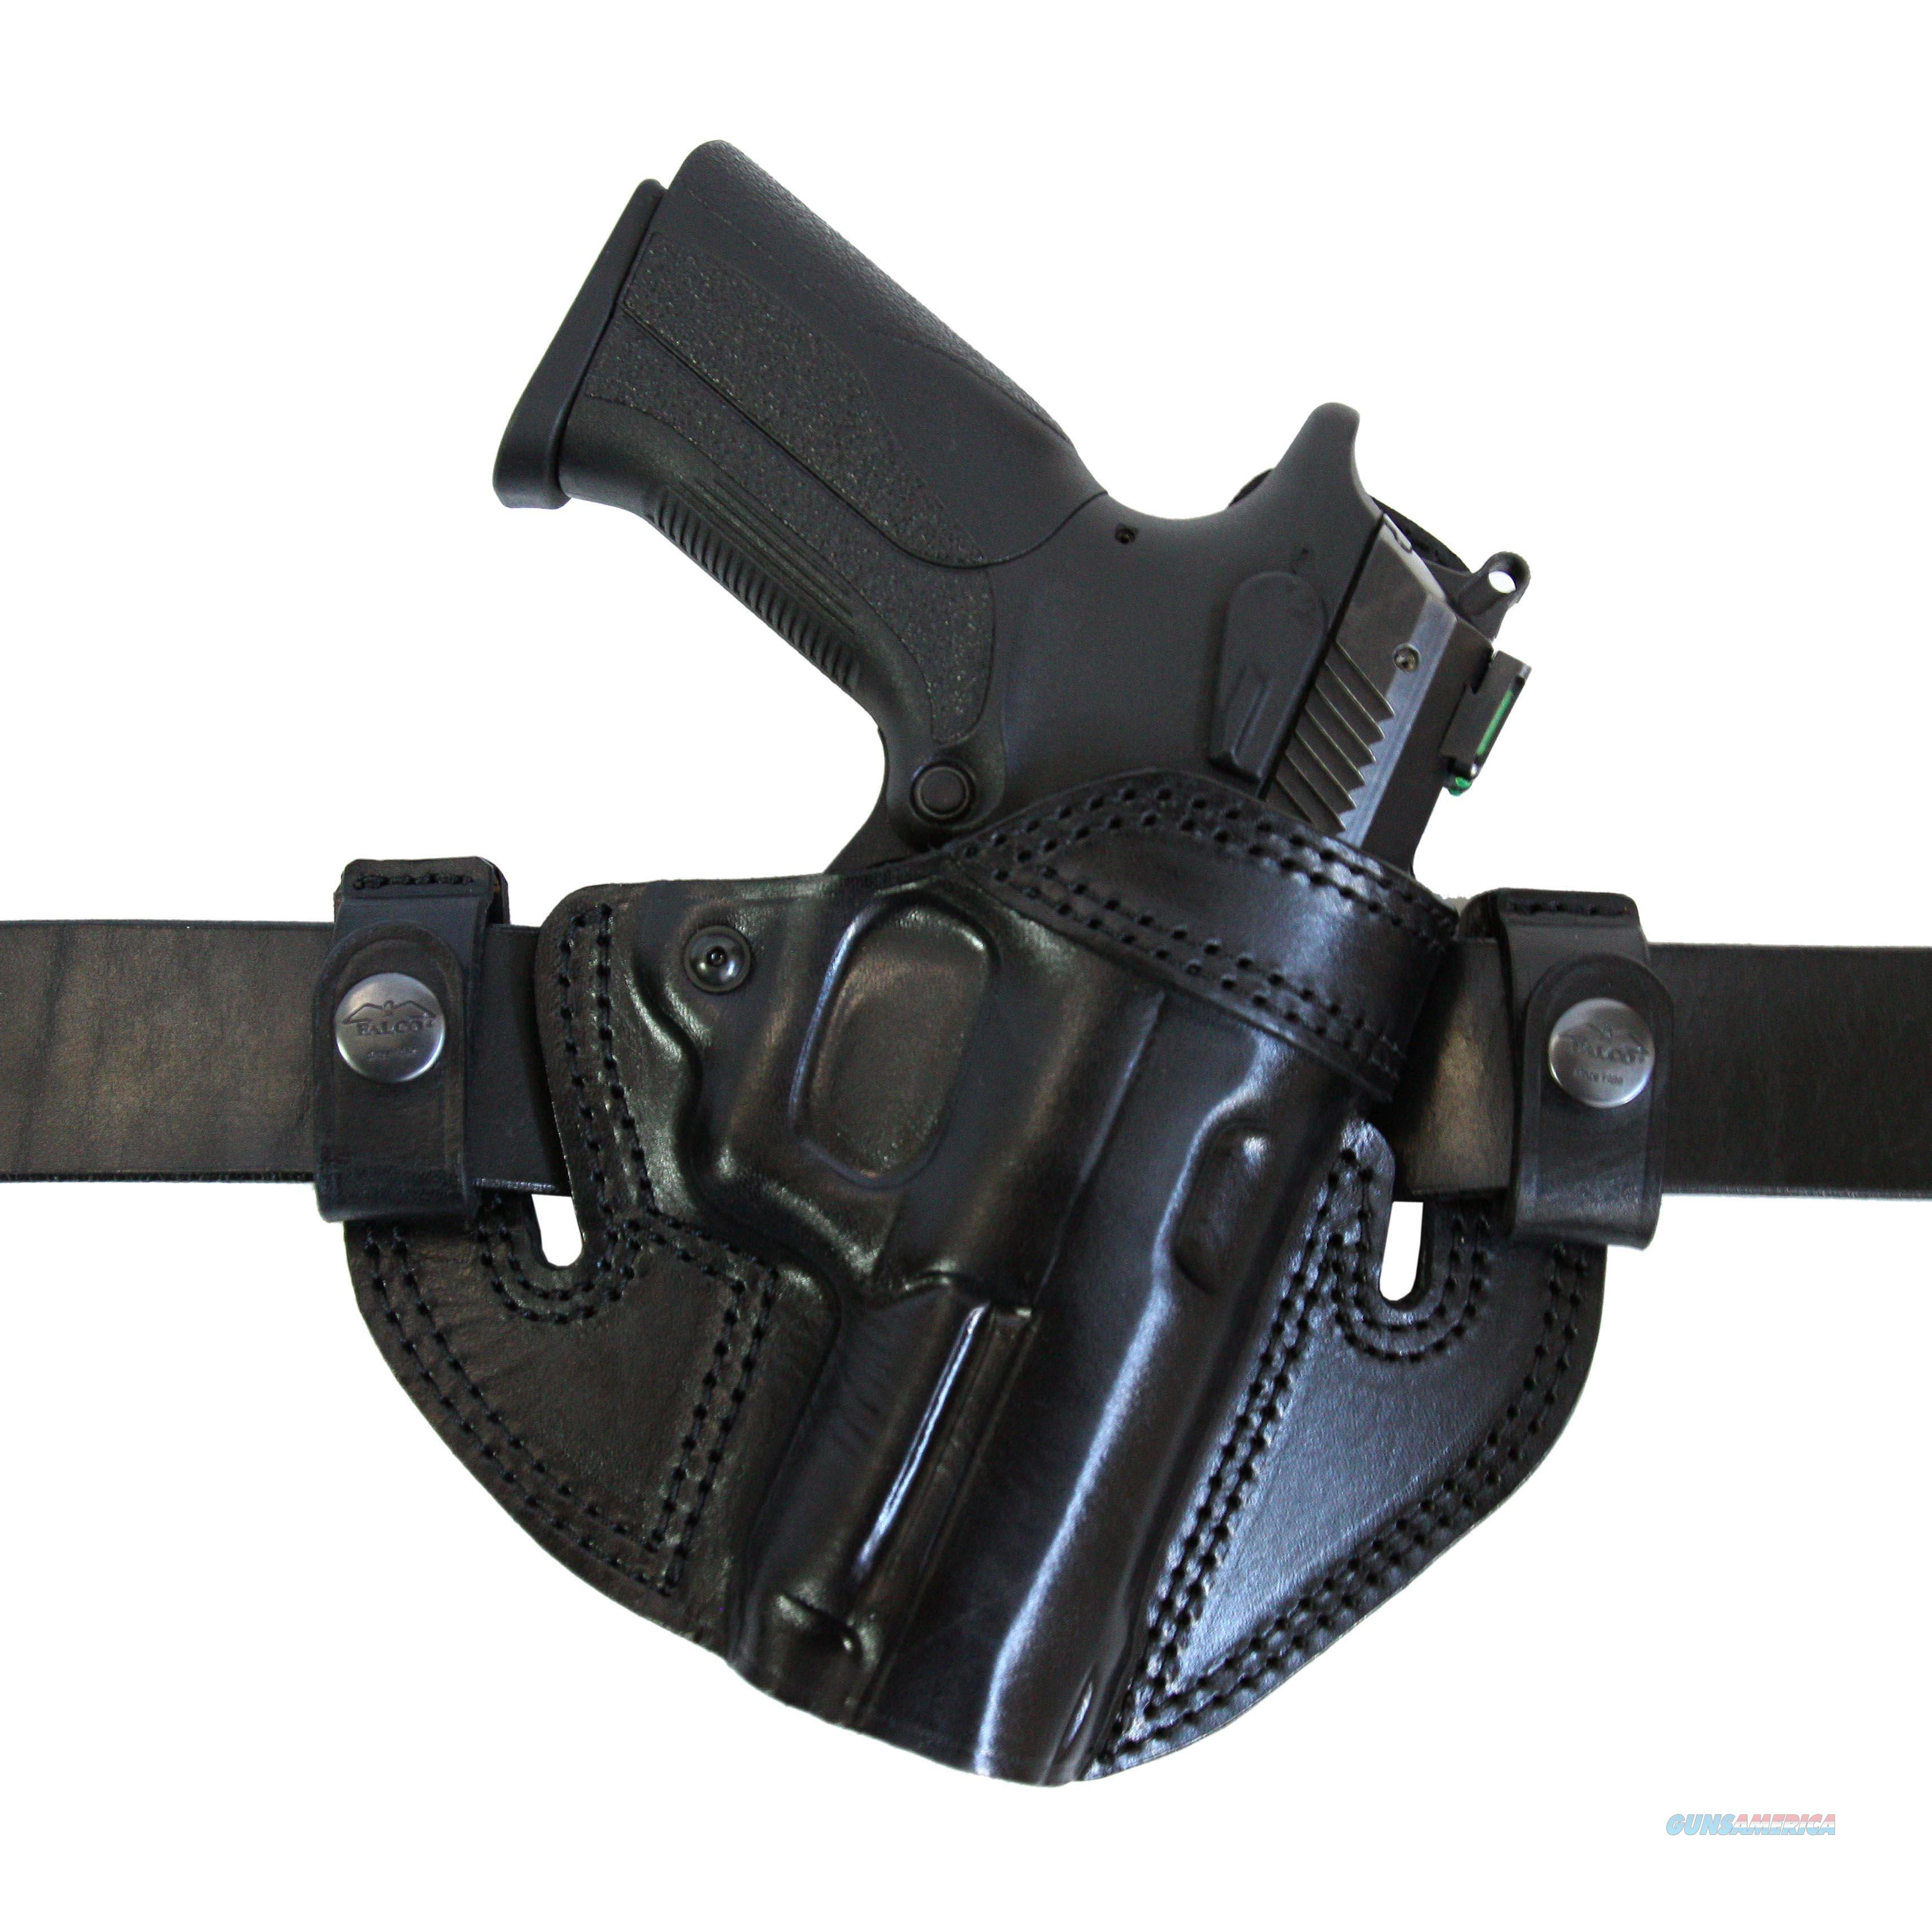 IWB / OWB Leather Gun Holster  Glock 19, 23, 25, 32, 38  Non-Guns > Holsters and Gunleather > Concealed Carry